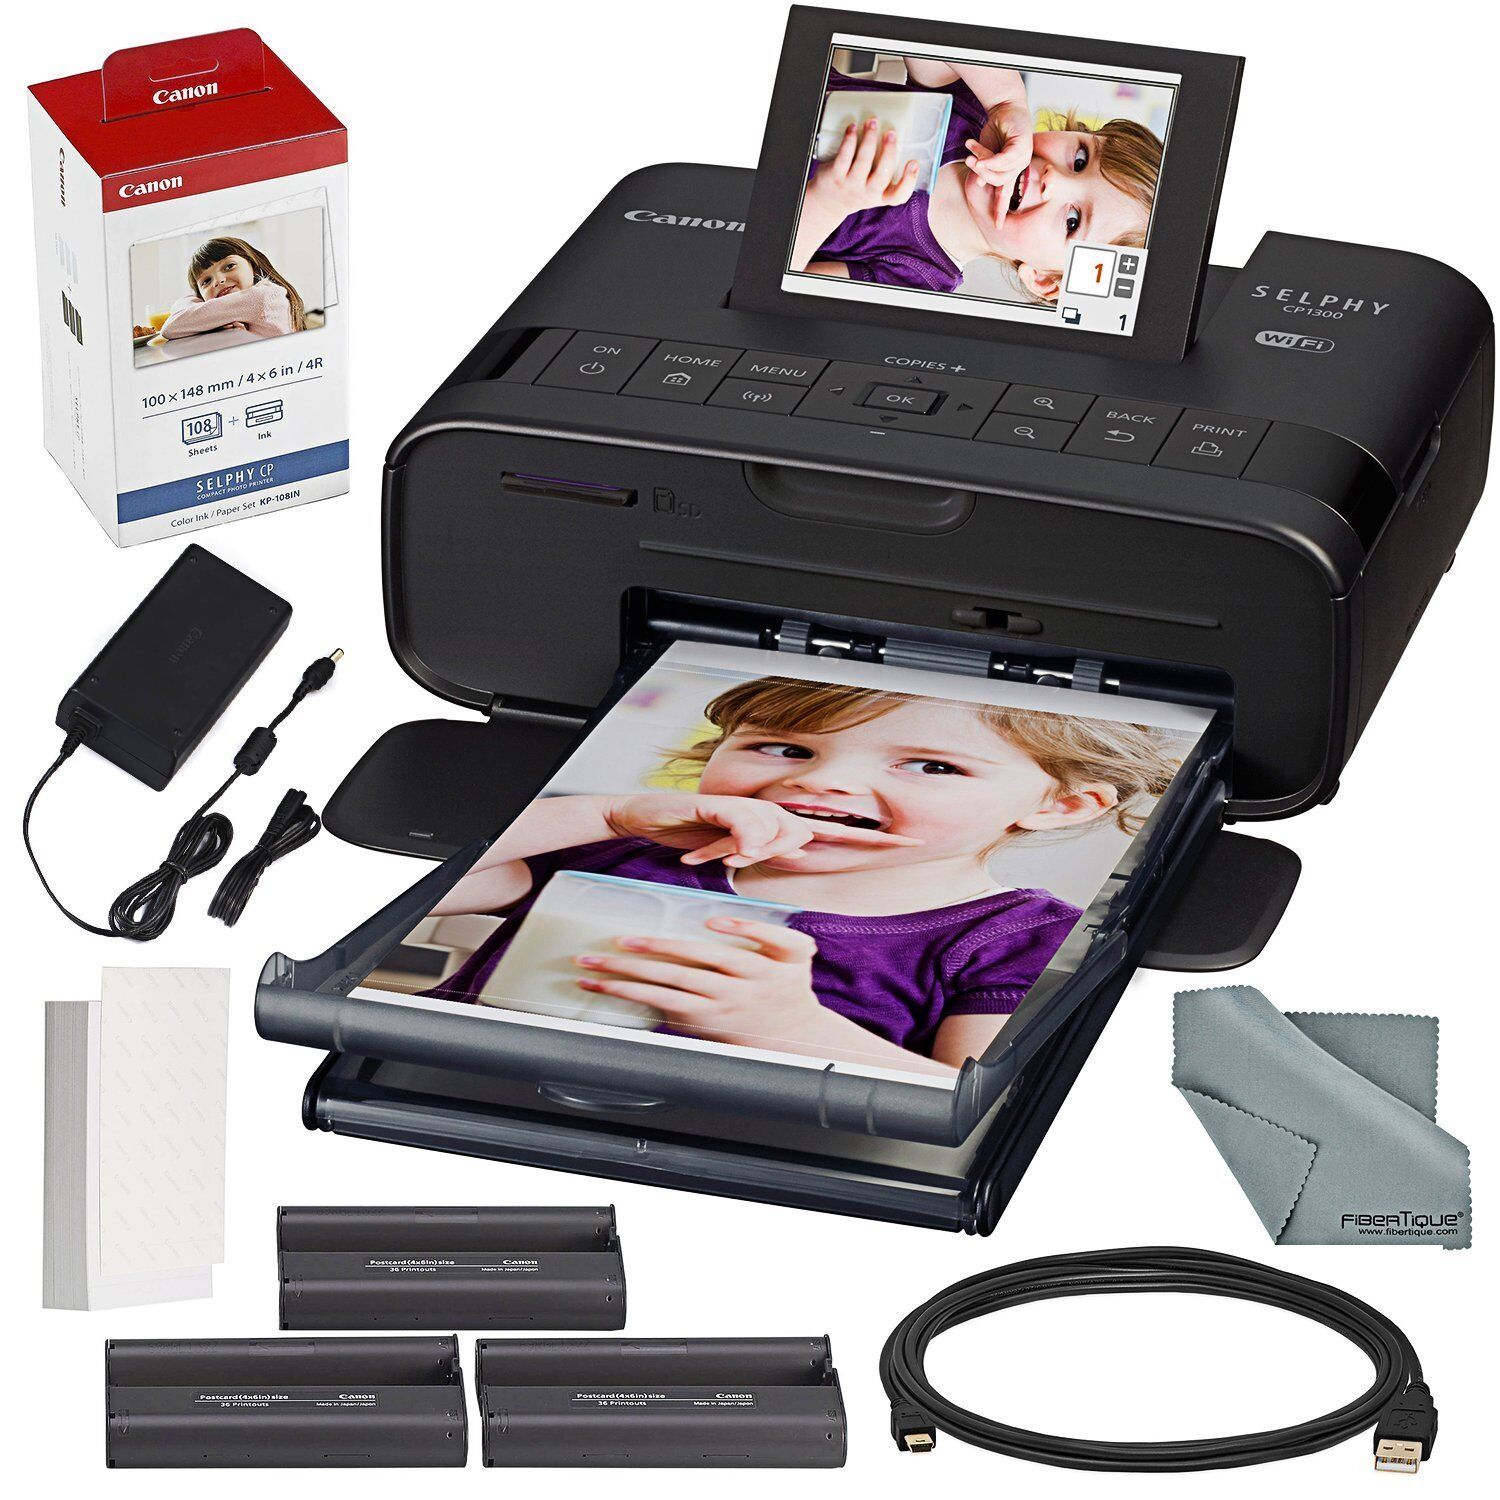 Canon - SELPHY CP1300 Wireless Compact Photo Printer - Black